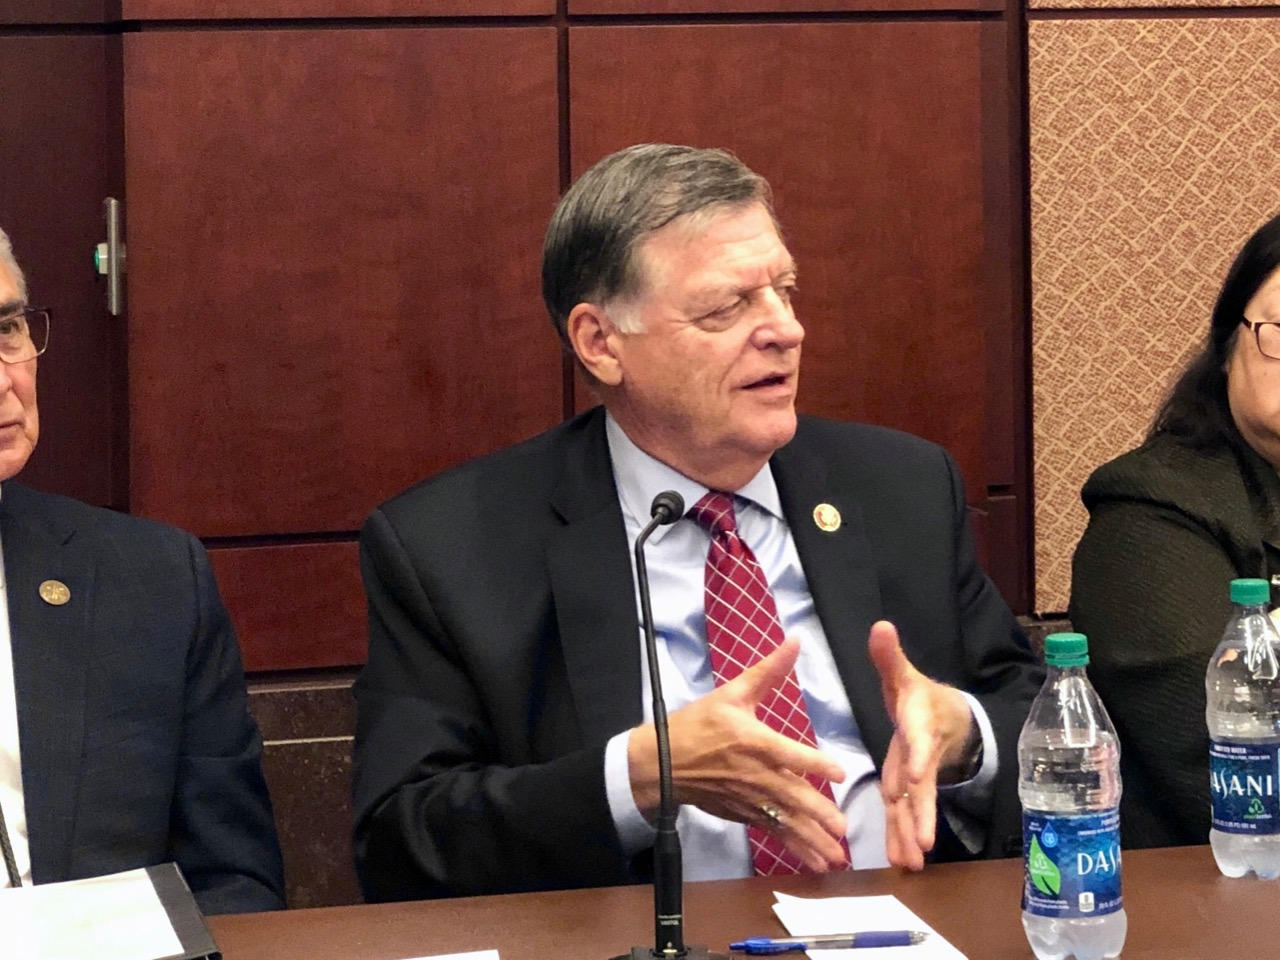 Rep. Tom Cole: Ready to combat coronavirus